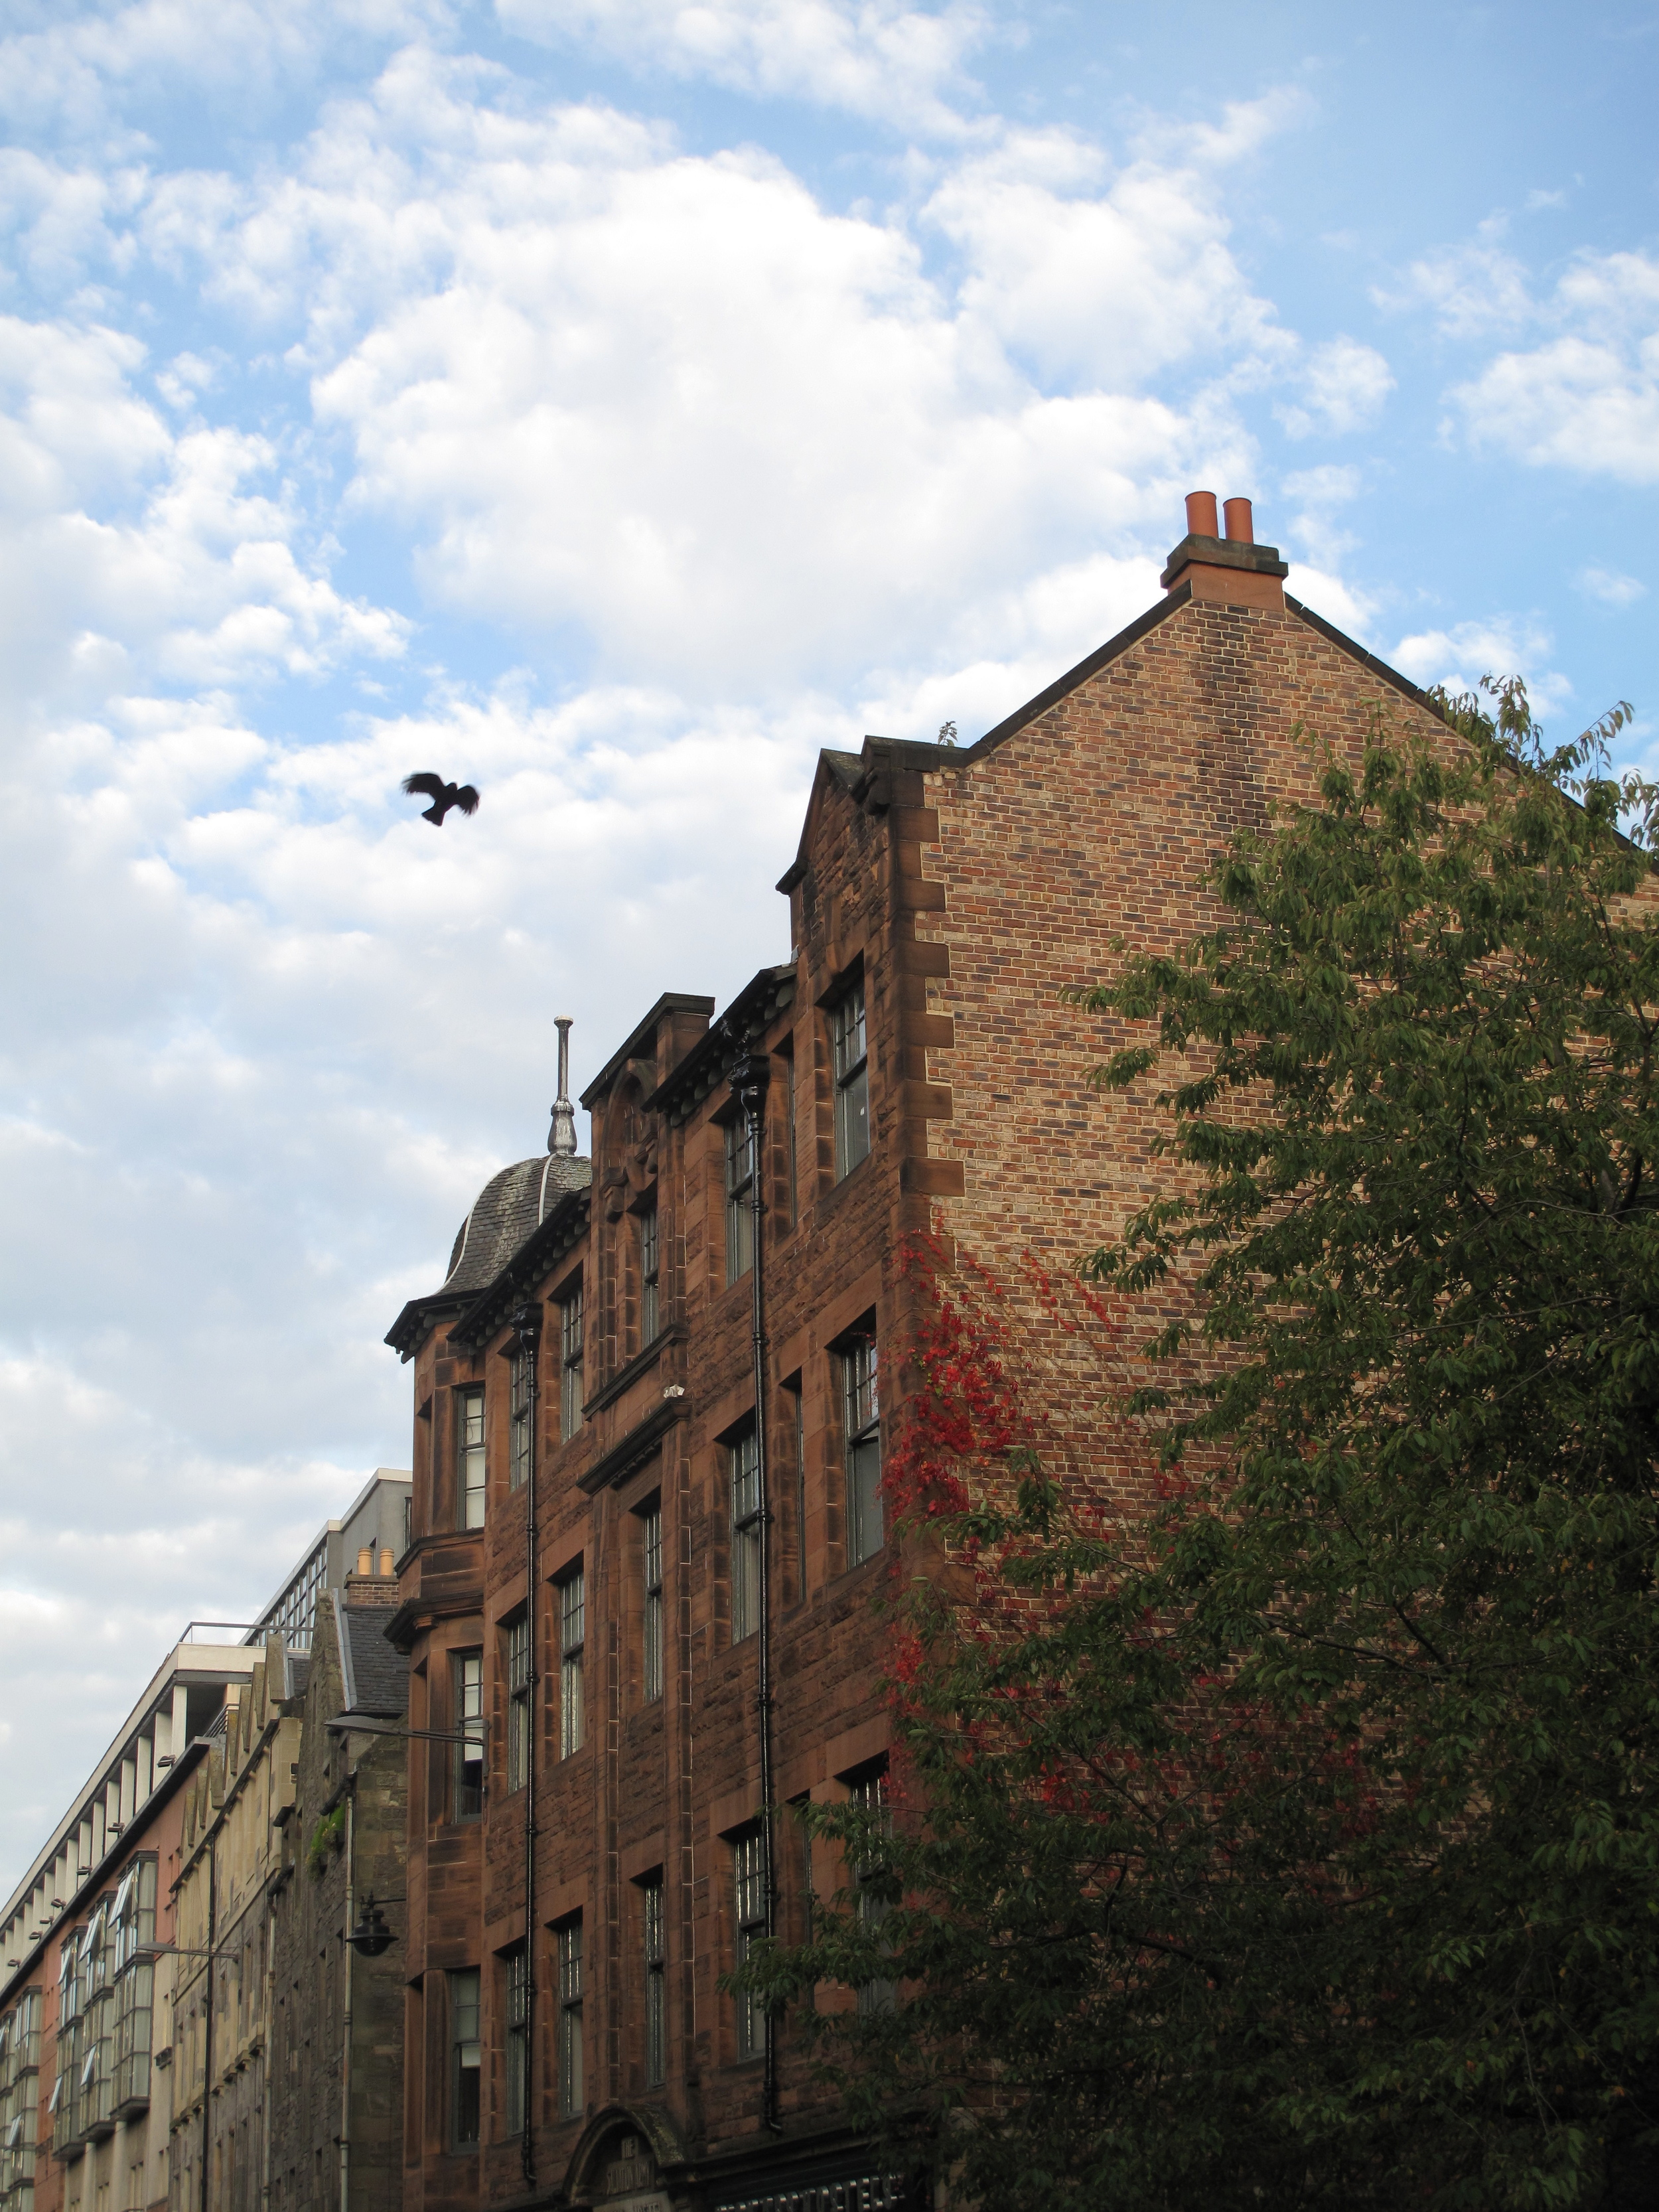 Blue skies and brick houses and red creeping vines in autumn. Edinburgh.